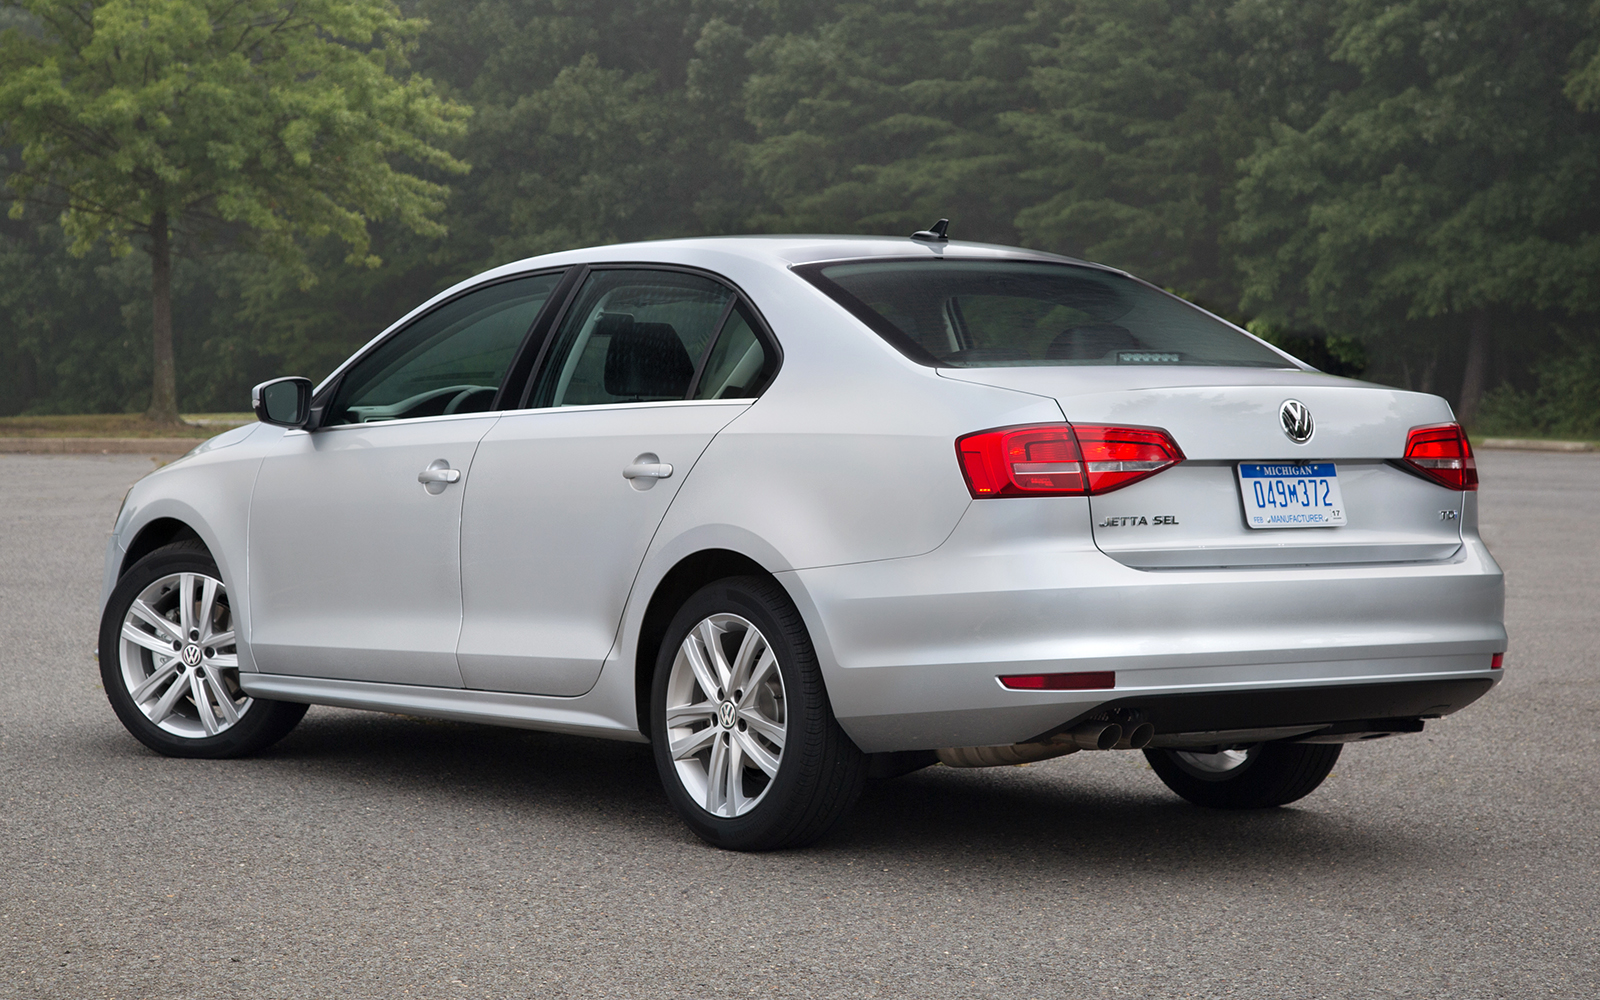 The 2015 Jetta is offered in four trim levels—Base, S, SE, and SEL